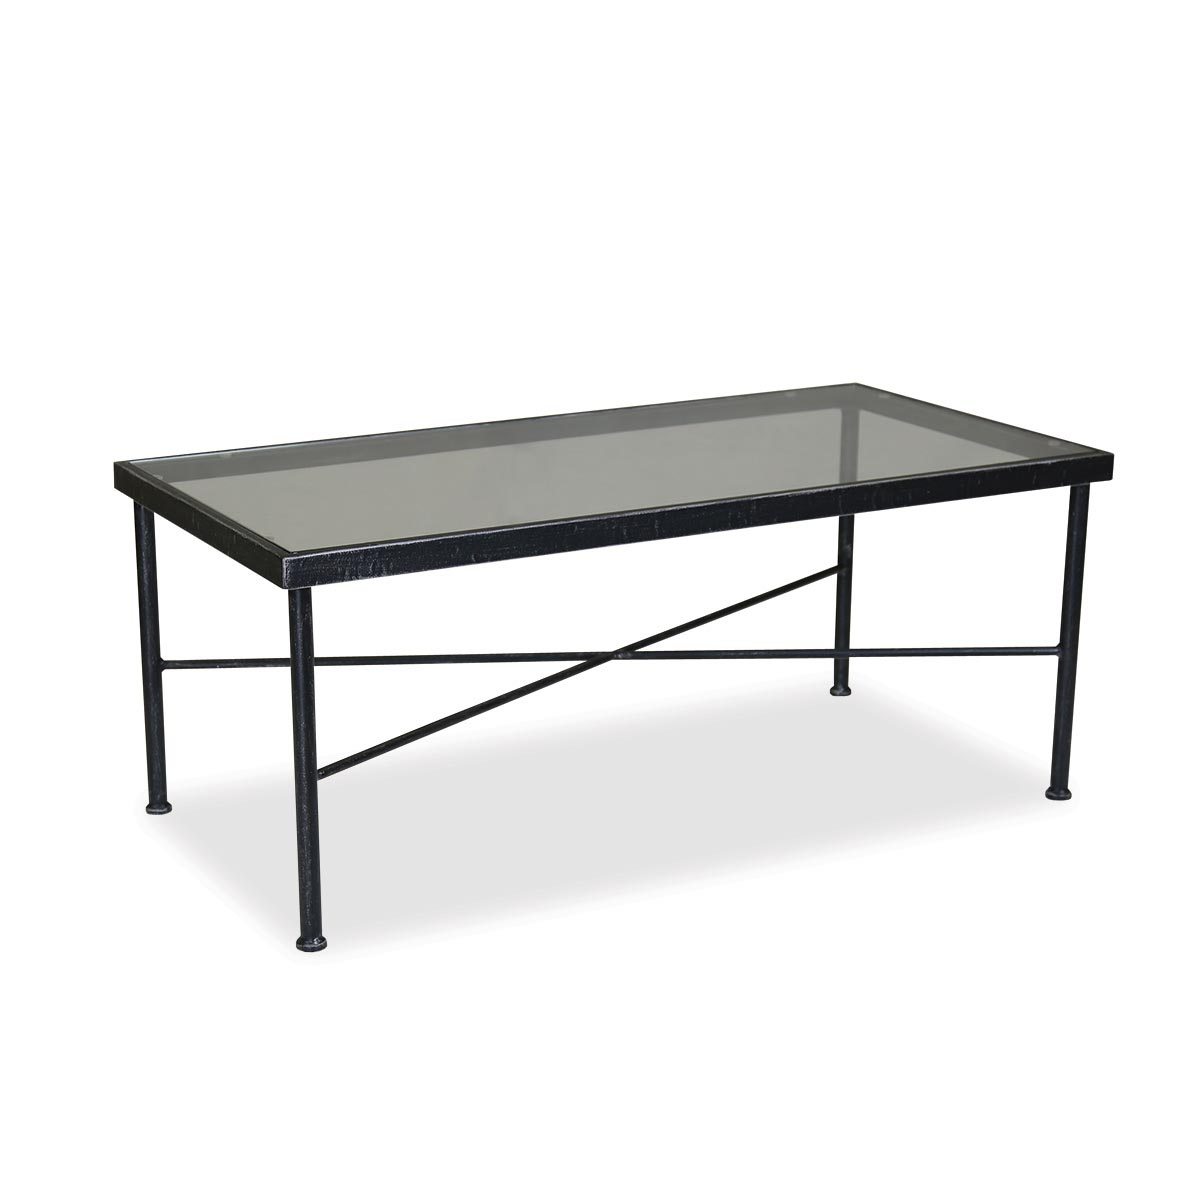 Black wrought iron patio coffee table coffee table design ideas Patio coffee tables